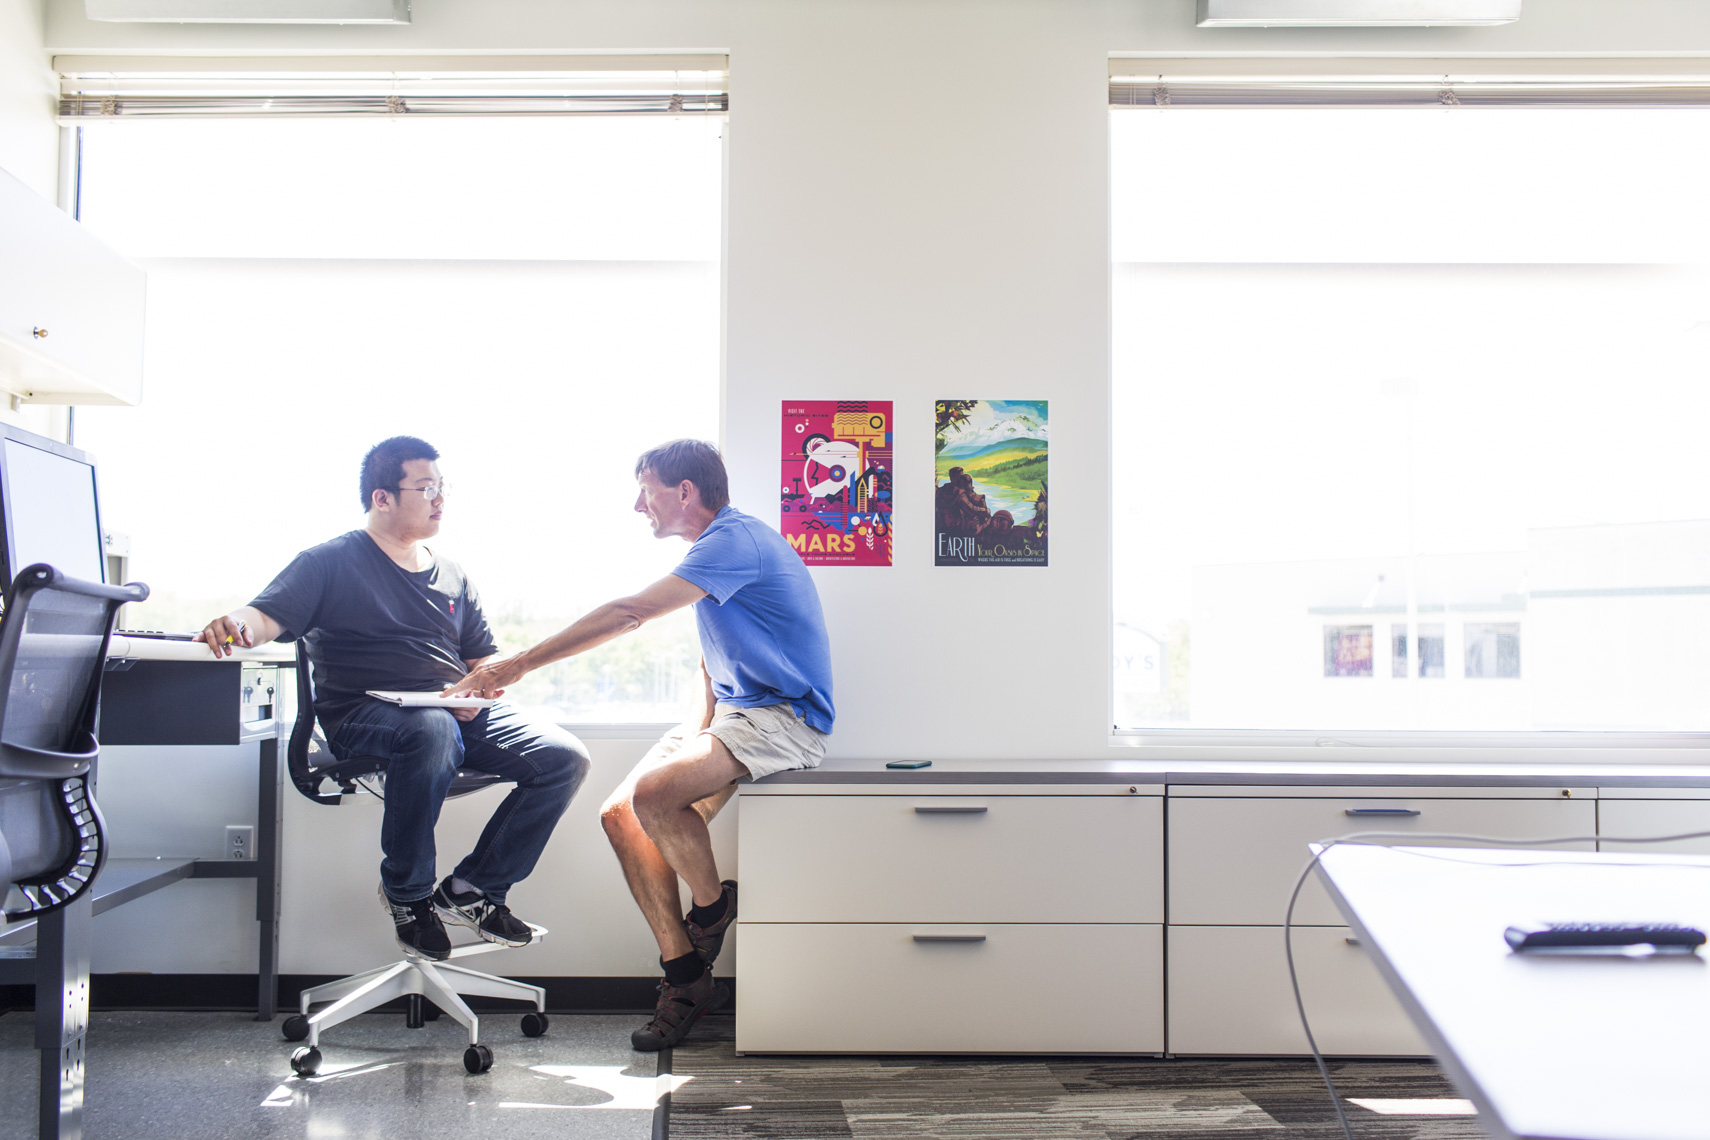 An older employee mentors a younger employee at a tech start-up company.